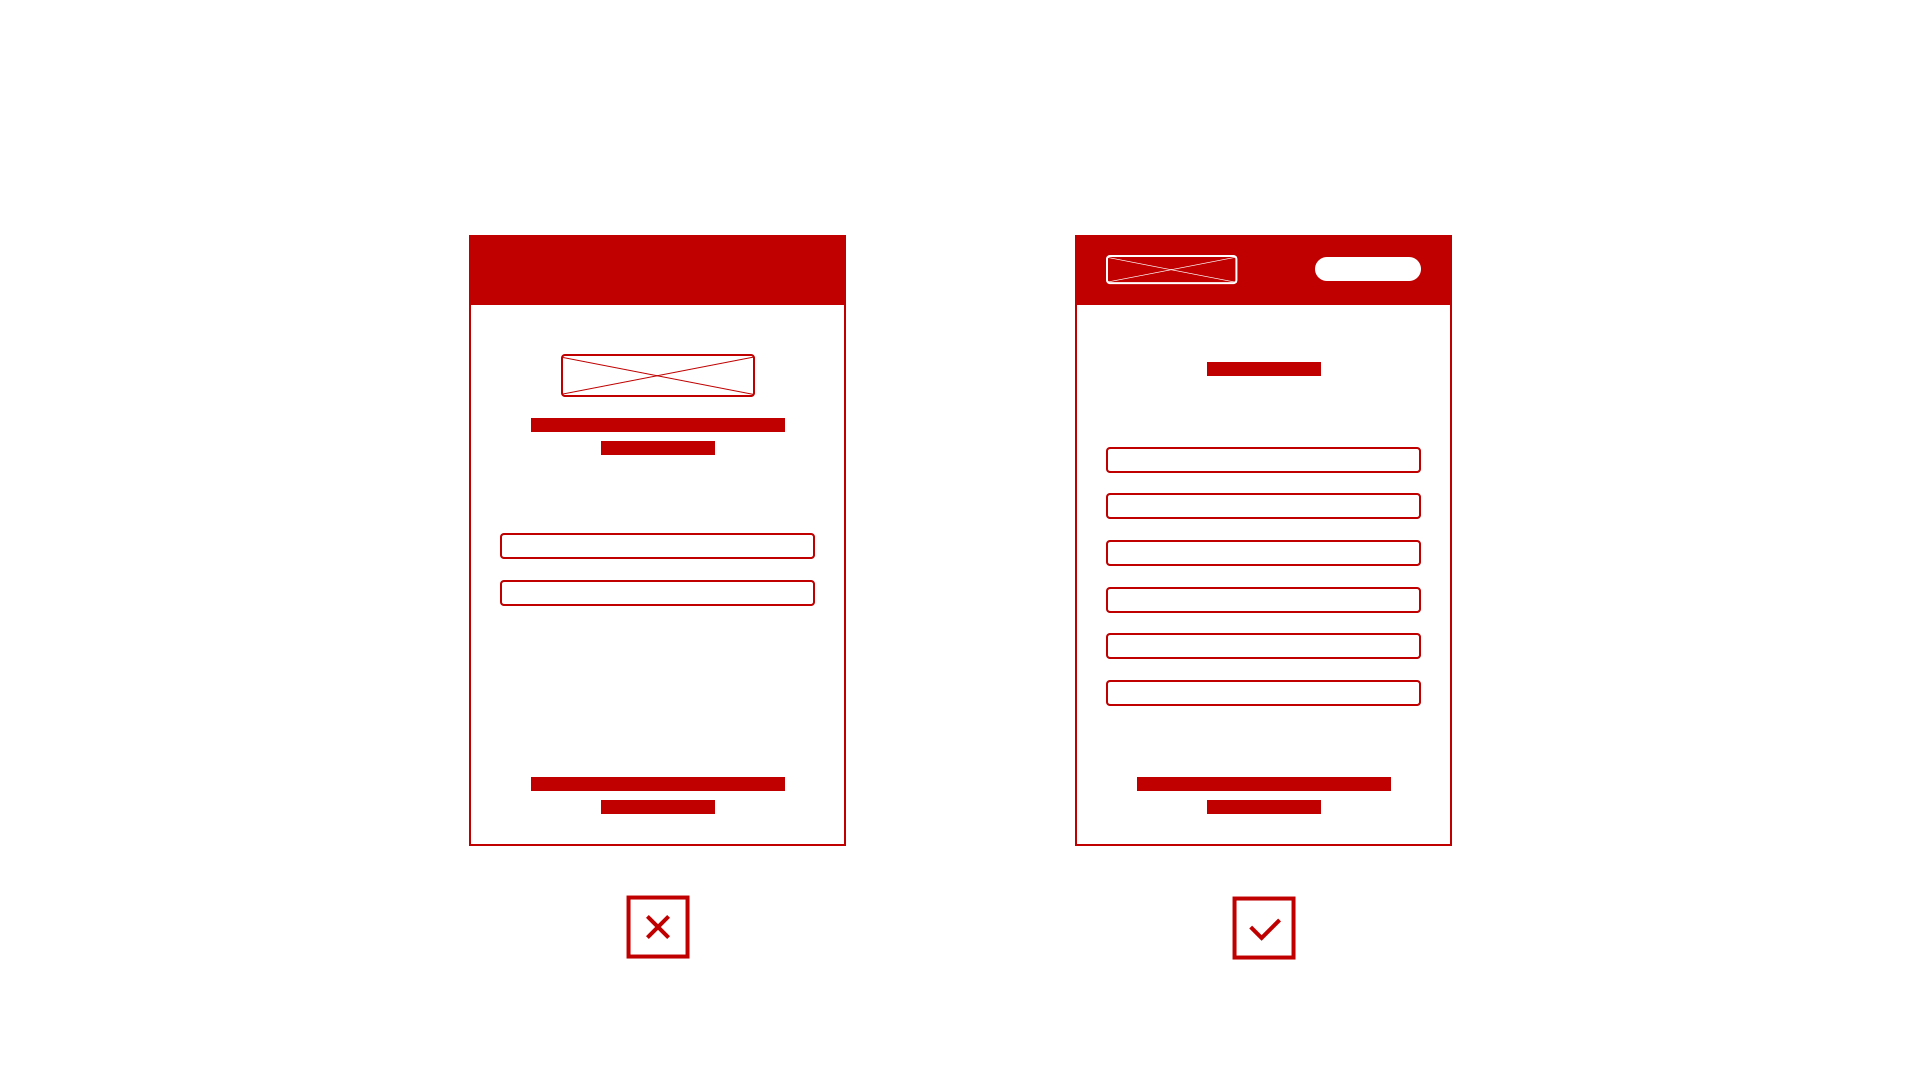 Reducing content on mobile devices will generate inconsistencies and provide poor user experience. Responsive design should be featuring full content.